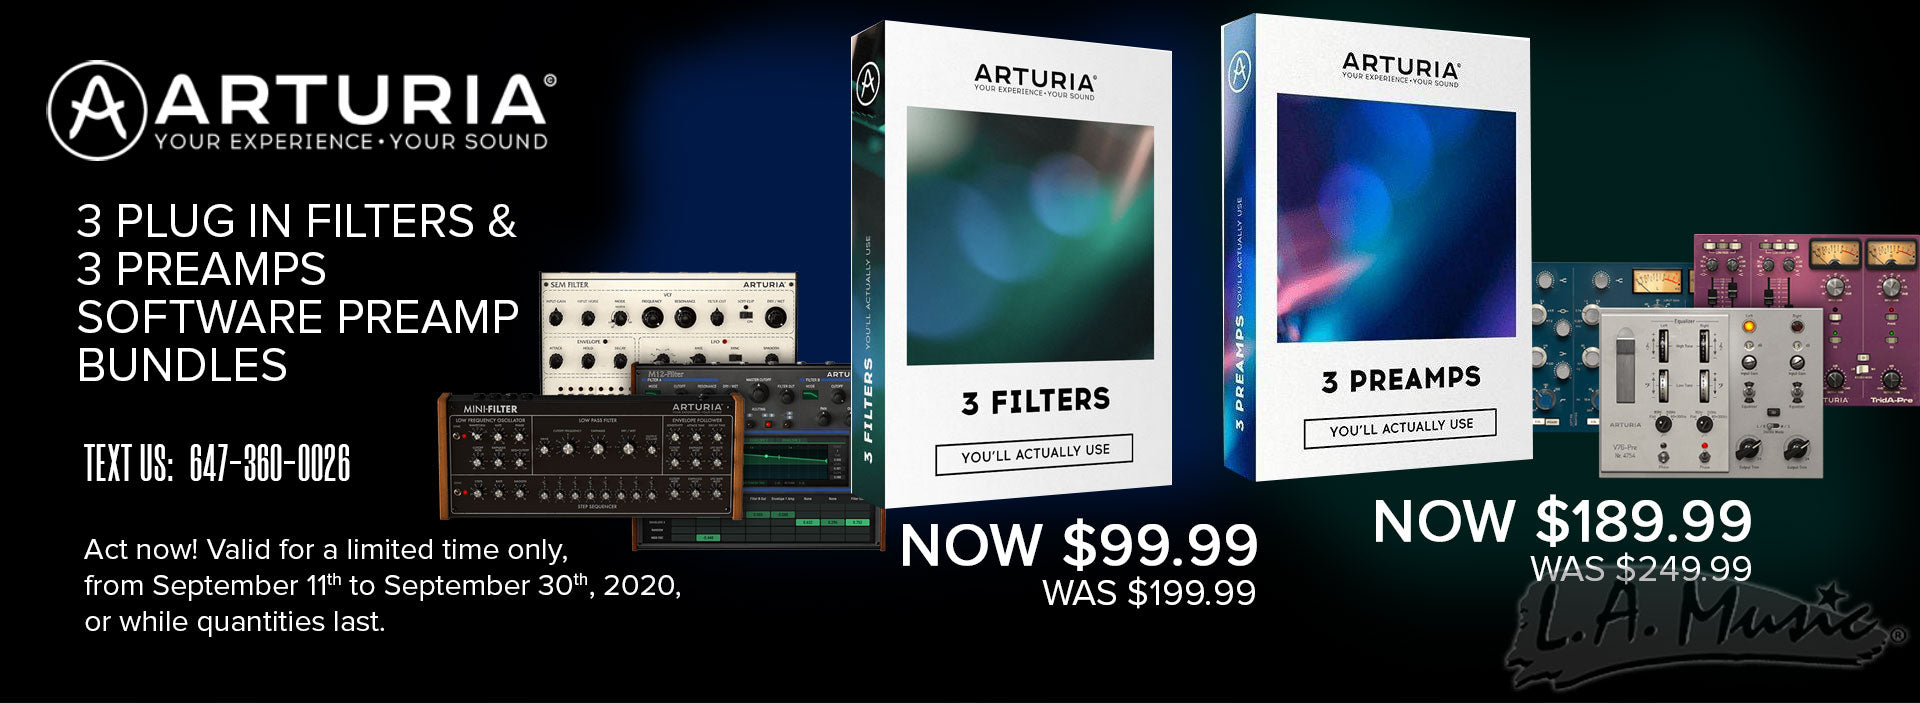 Arturia 3 Filters and 3 Preamps Software Bundles Instant Rebates